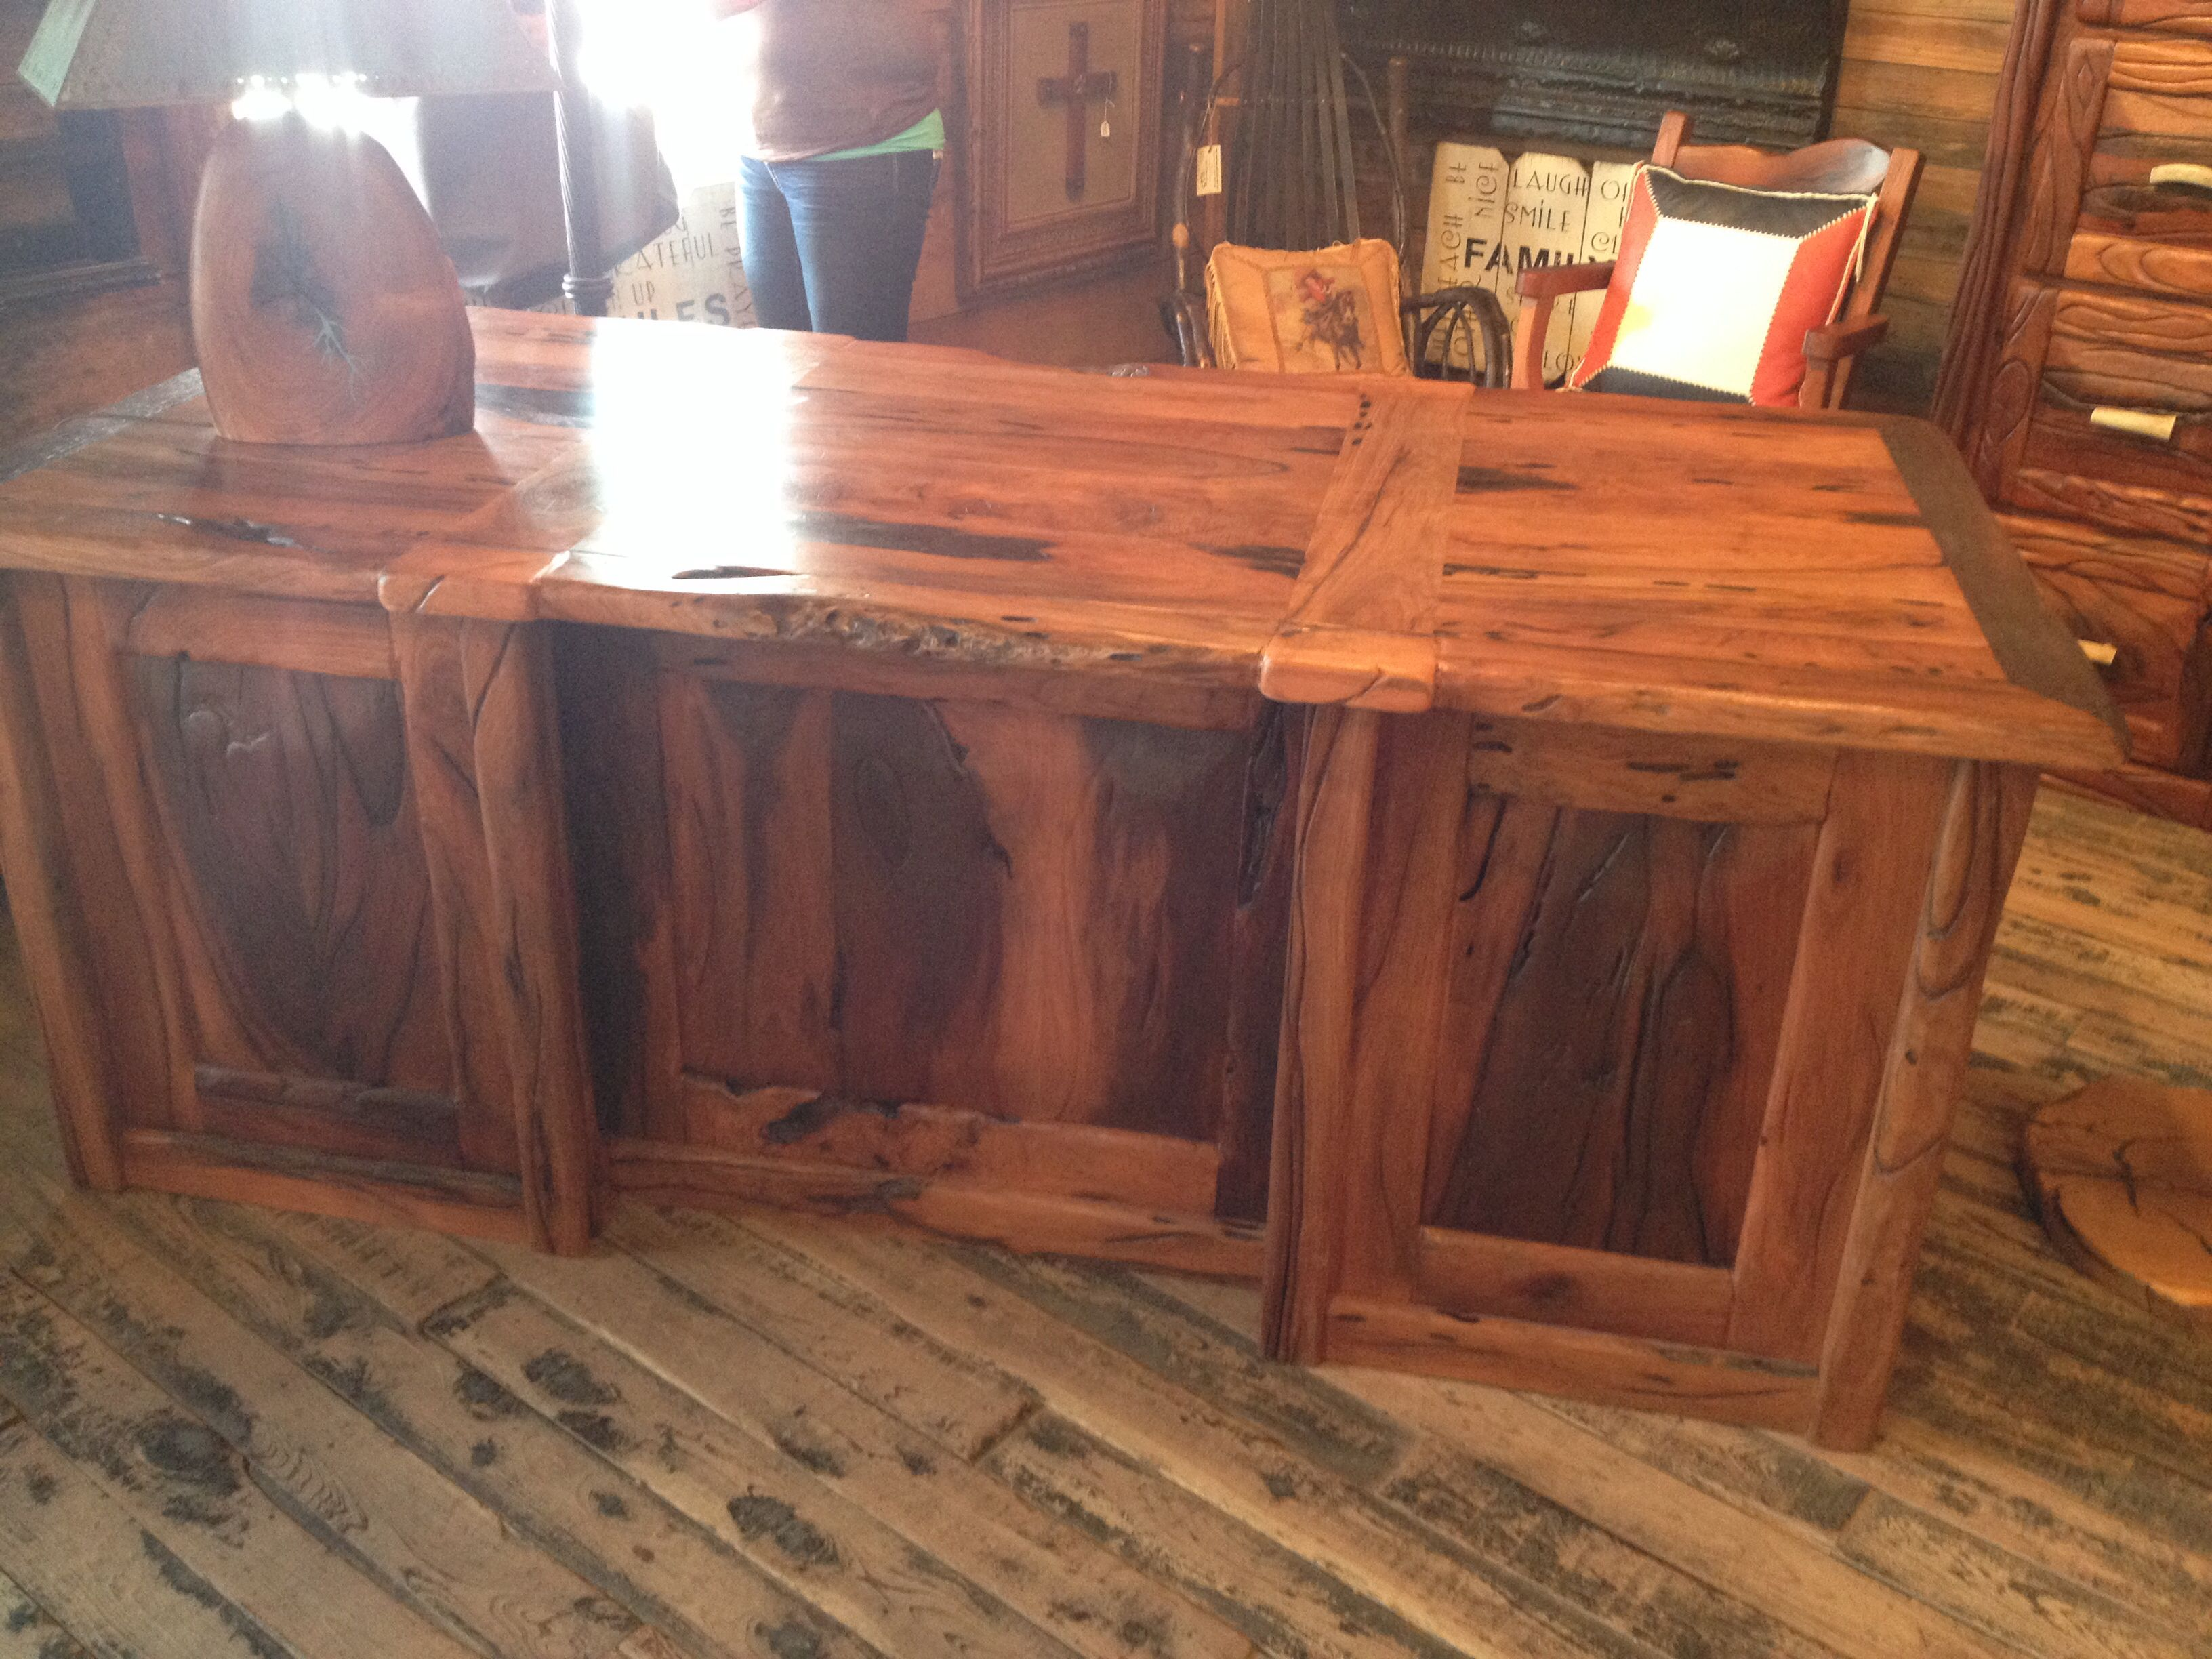 Raw Timber Furniture Rustic Handmade Mesquite Desk From Texas Hill Country